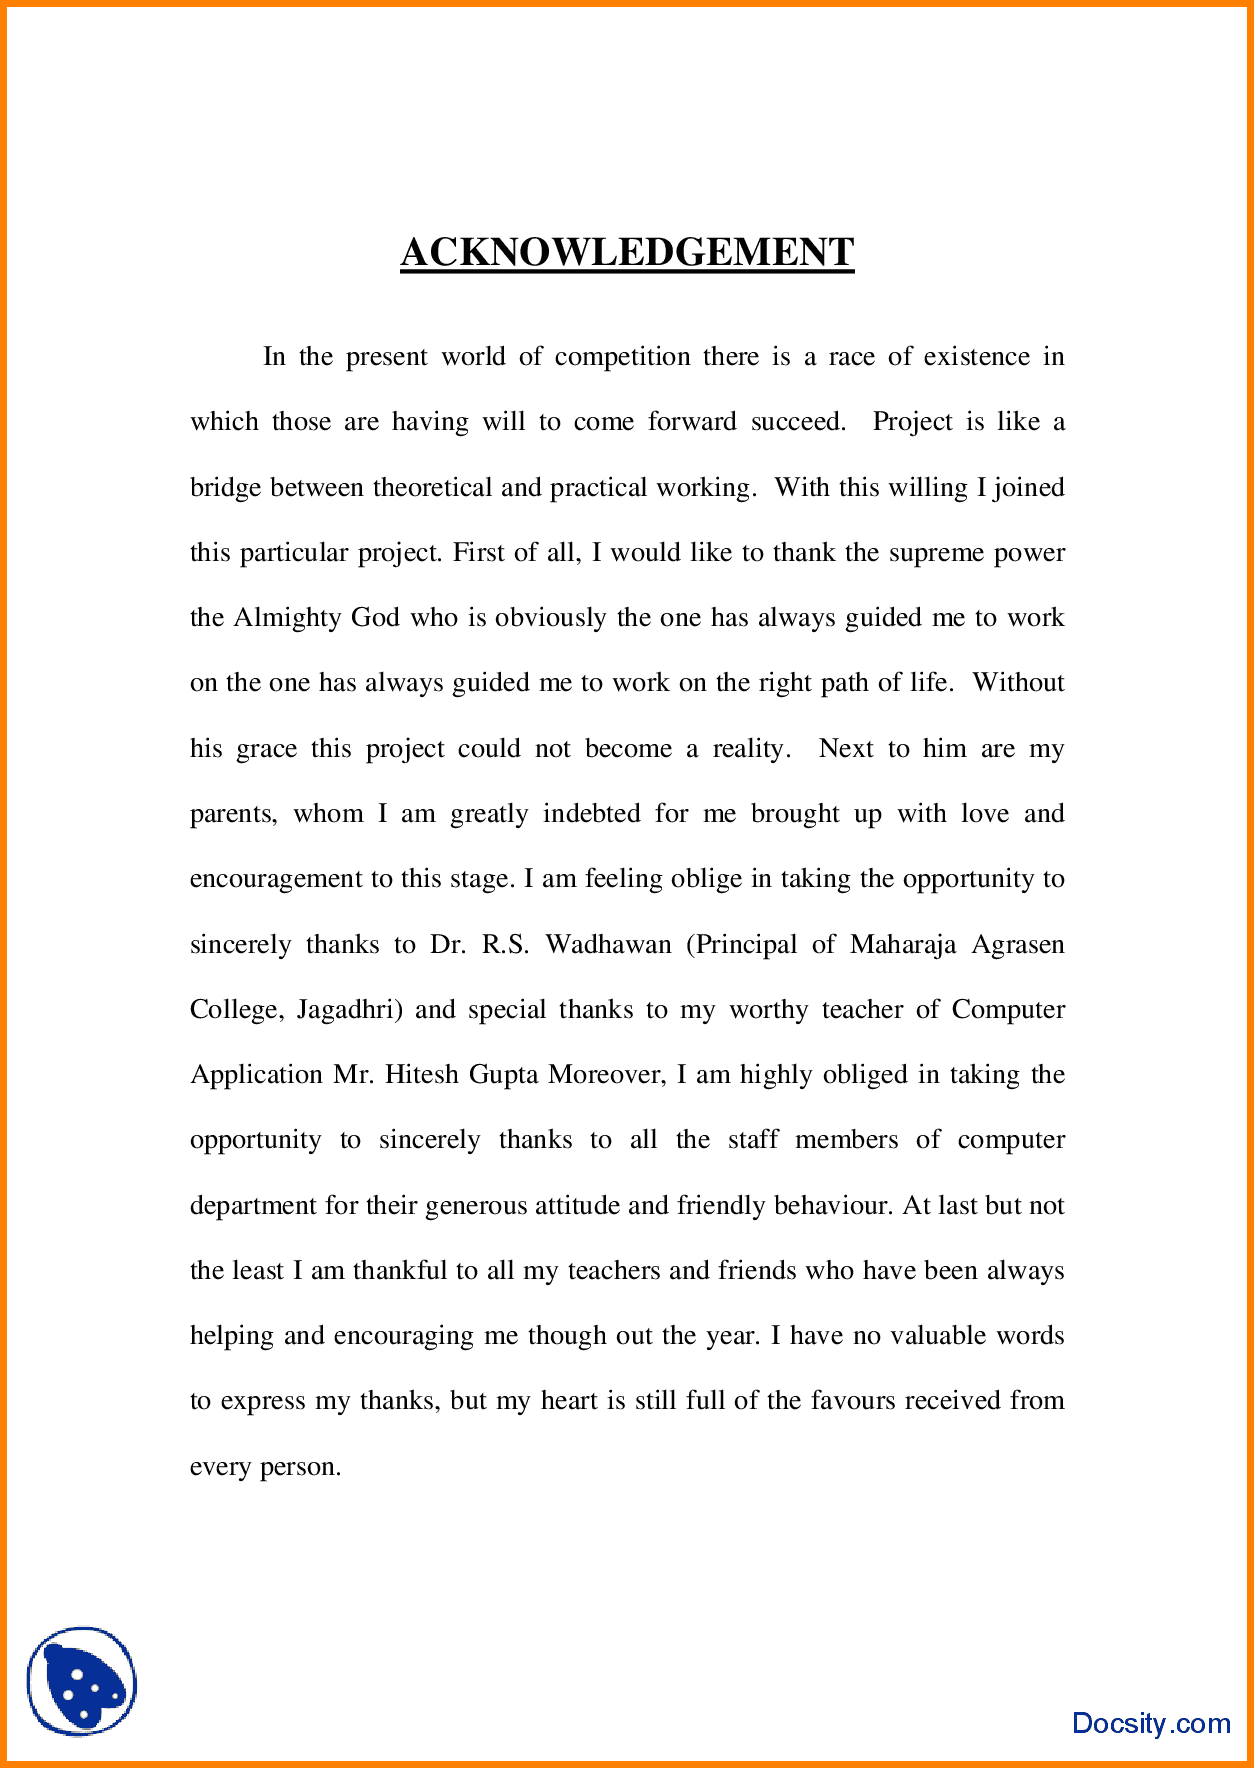 6+ Acknowledgement Sample For Project | Report Example | Sample Resume  Templates, Writing, Chemistry Projects